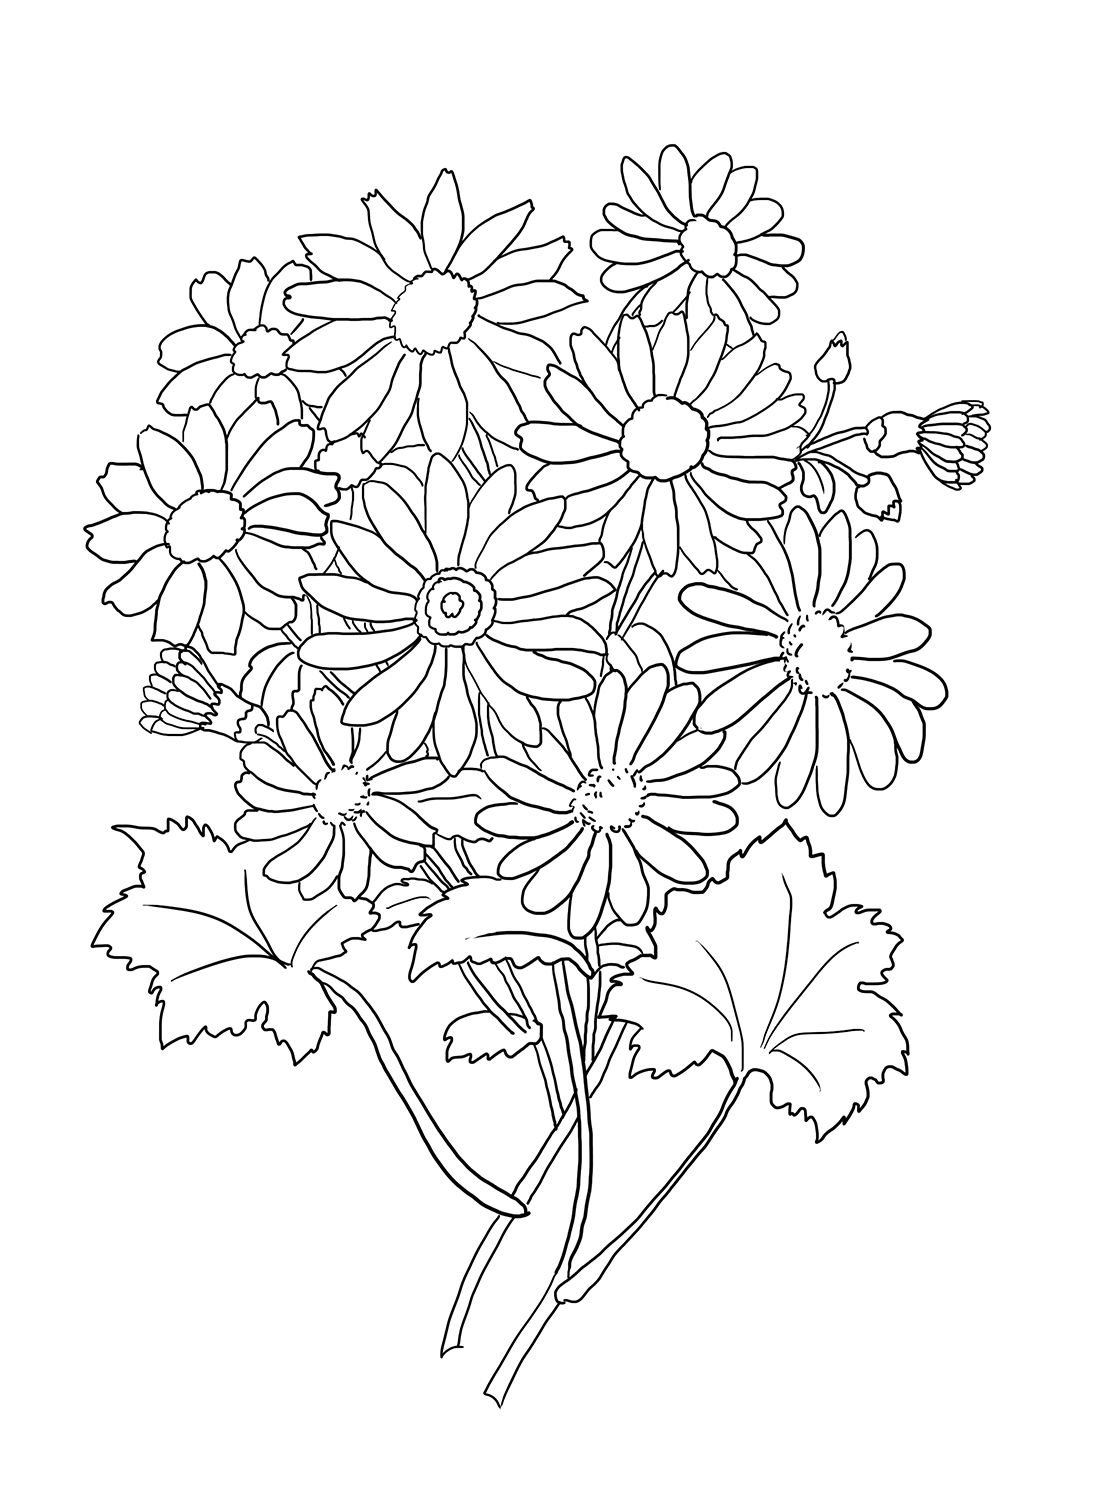 how to draw a bouquet of flowers flower coloring pages bouquet flowers a of how draw to